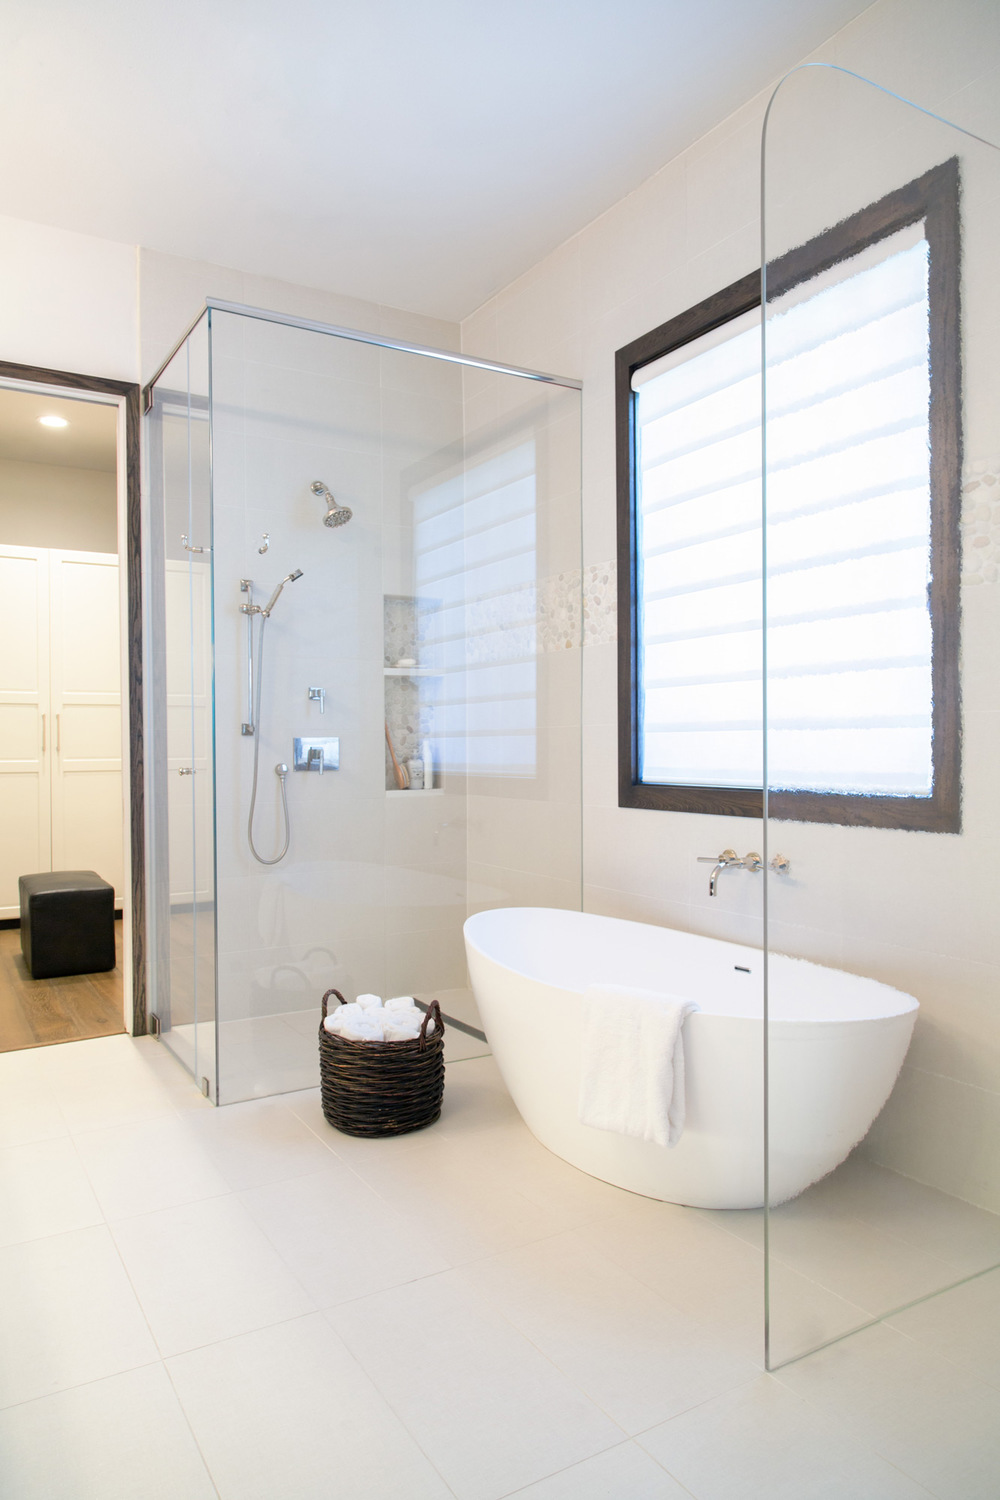 BEFORE & AFTER: A Master Bathroom Finally Becomes The